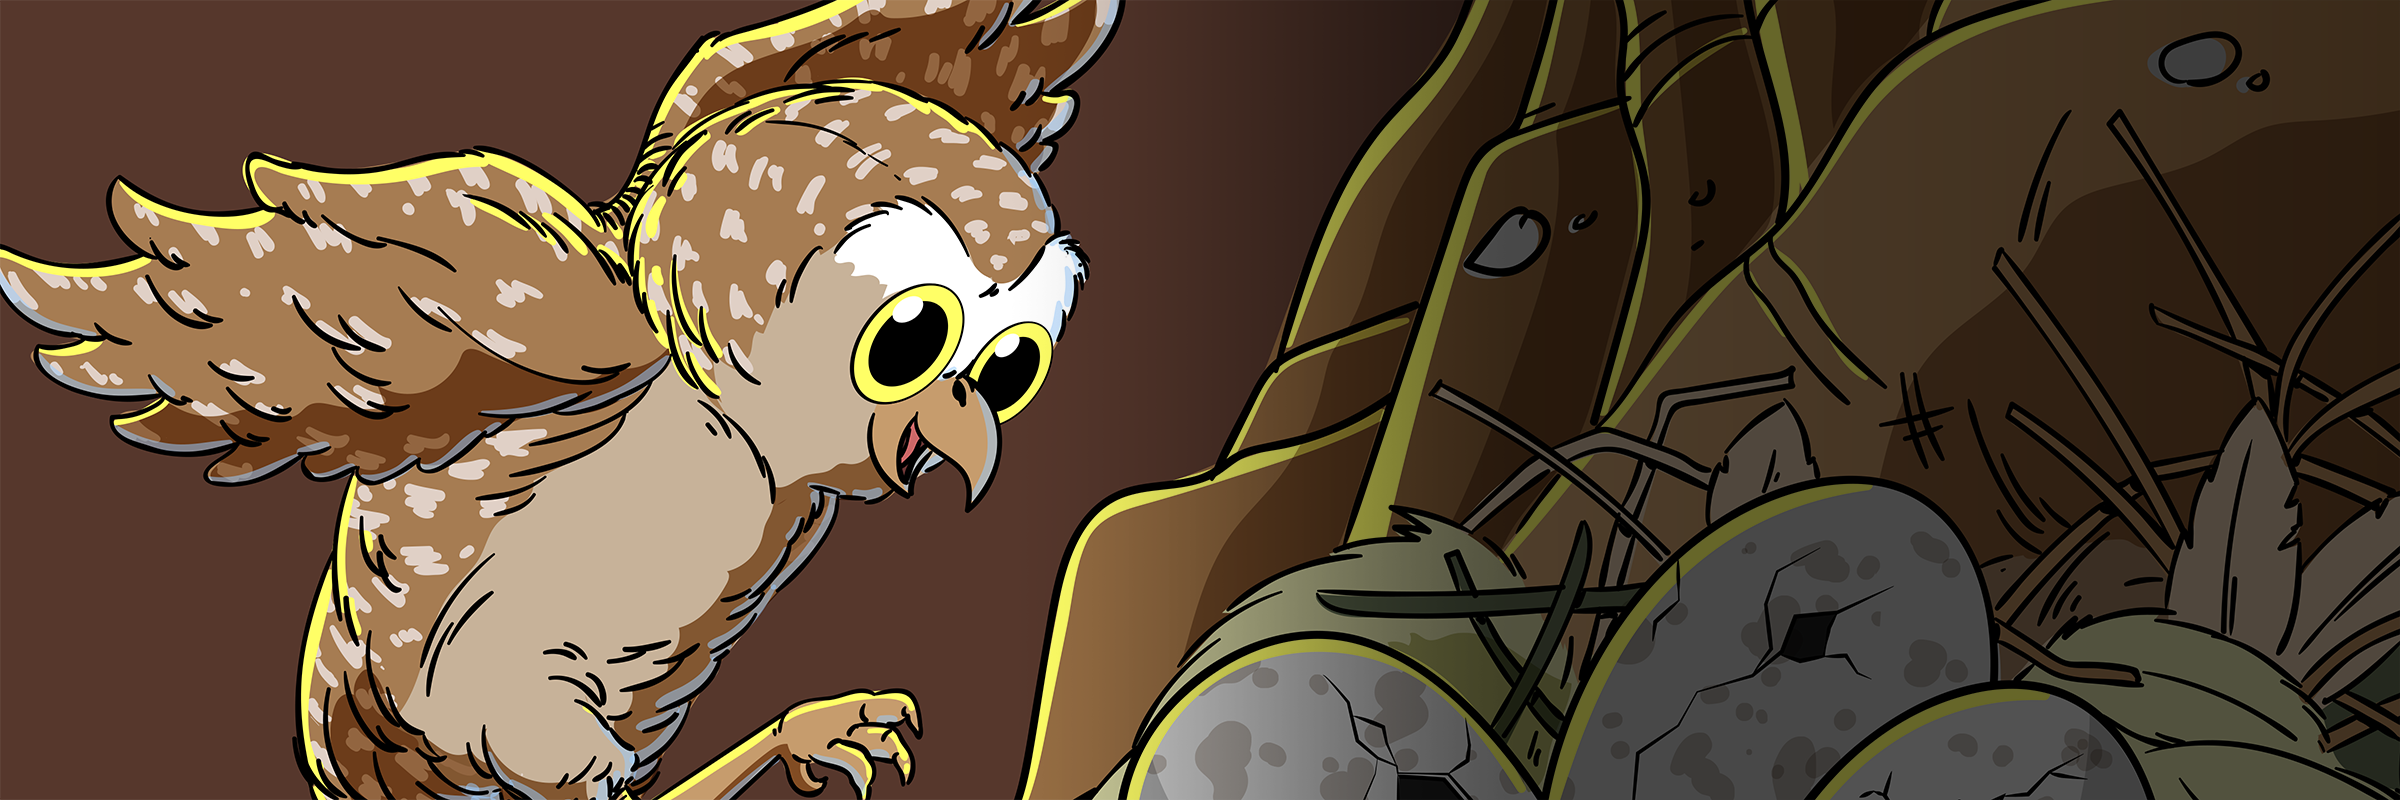 An illustration of a Burrowing Owl landing at a nest with eggs.